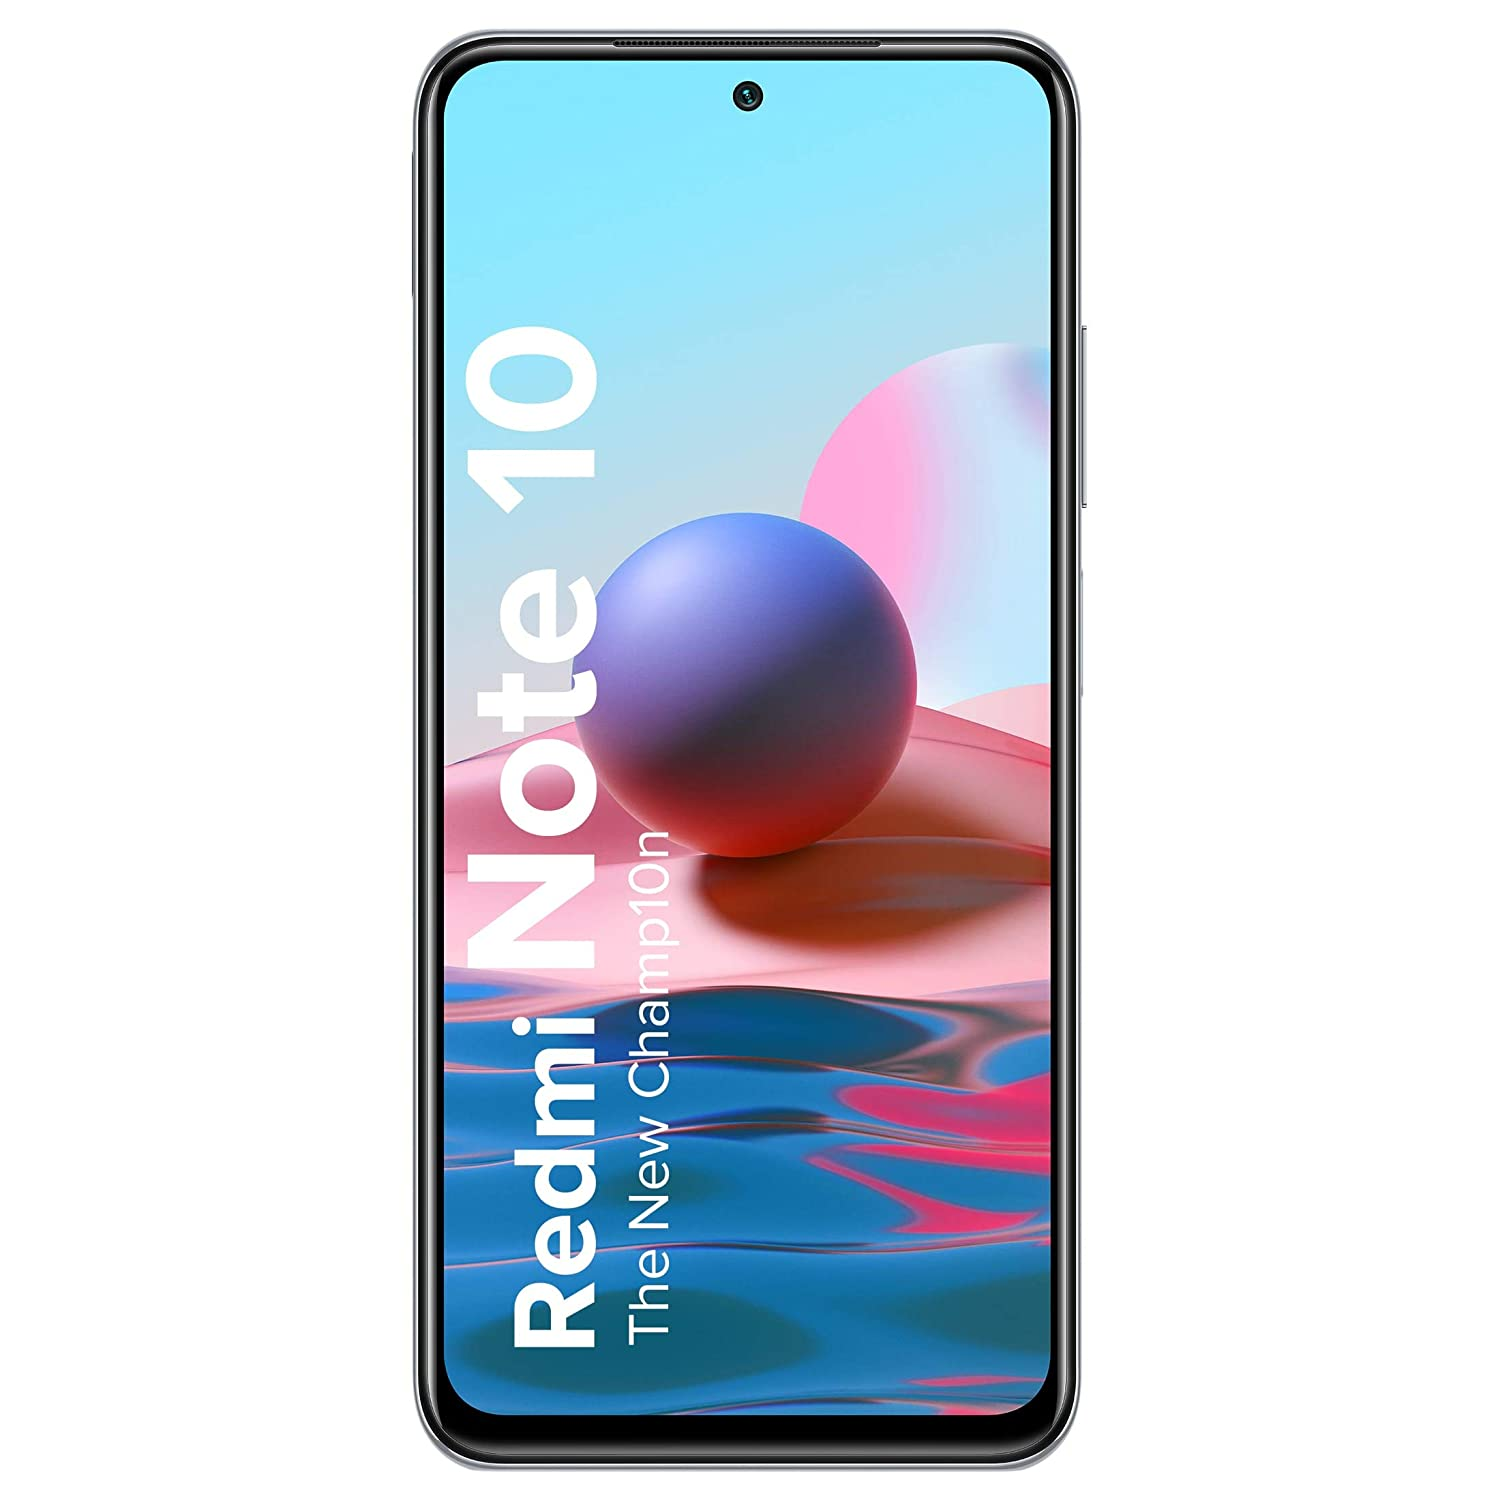 Redmi Note 10 (Frost White, 4GB RAM, 64GB Storage) - Super Amoled Display | 48MP Sony Sensor IMX582 | Snapdragon 678 Processor